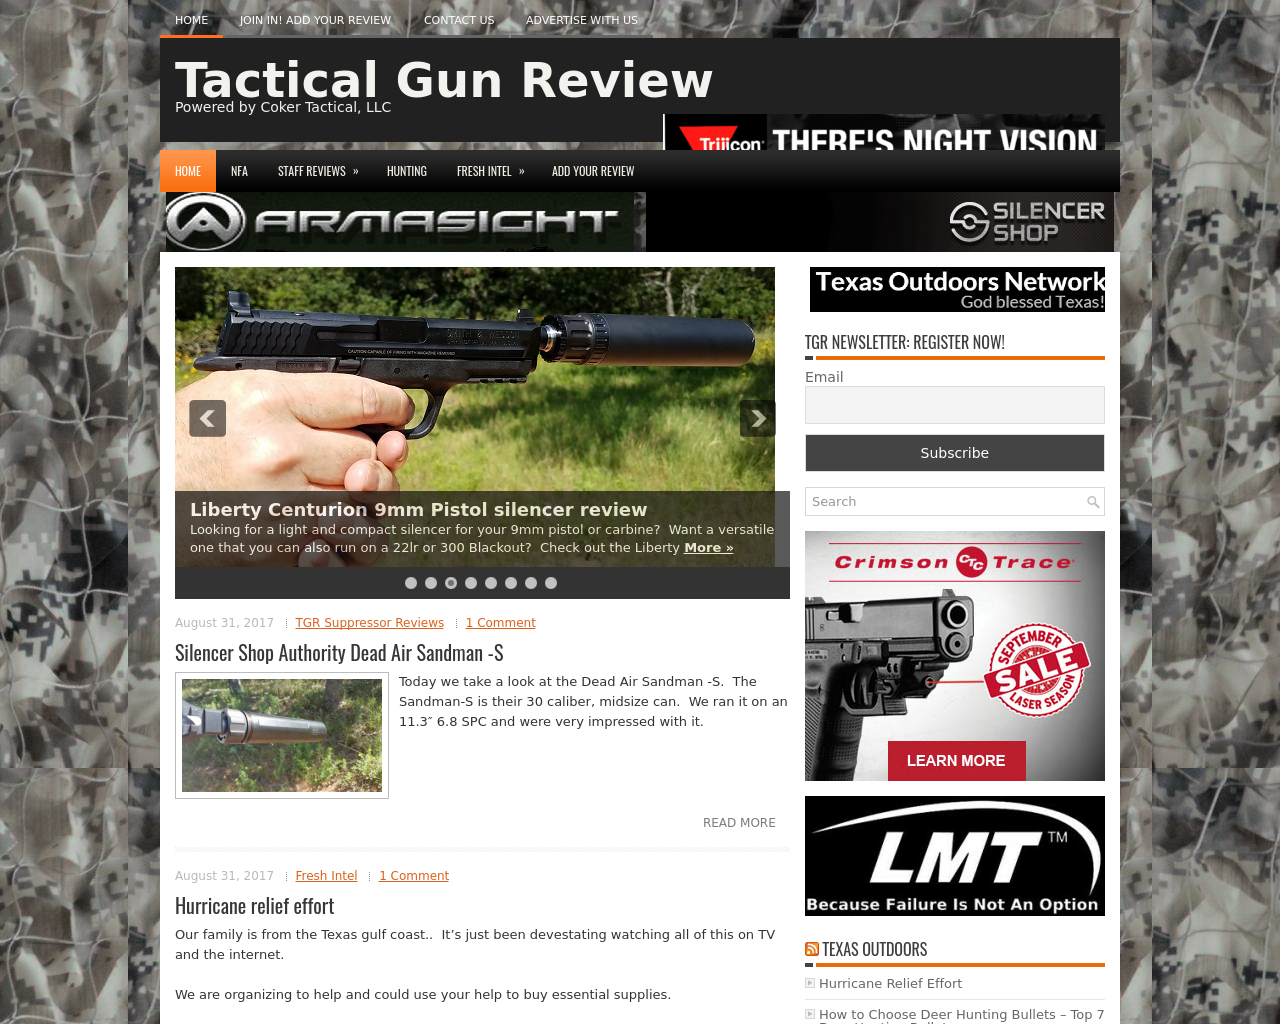 Tactical-Gun-Review-Advertising-Reviews-Pricing